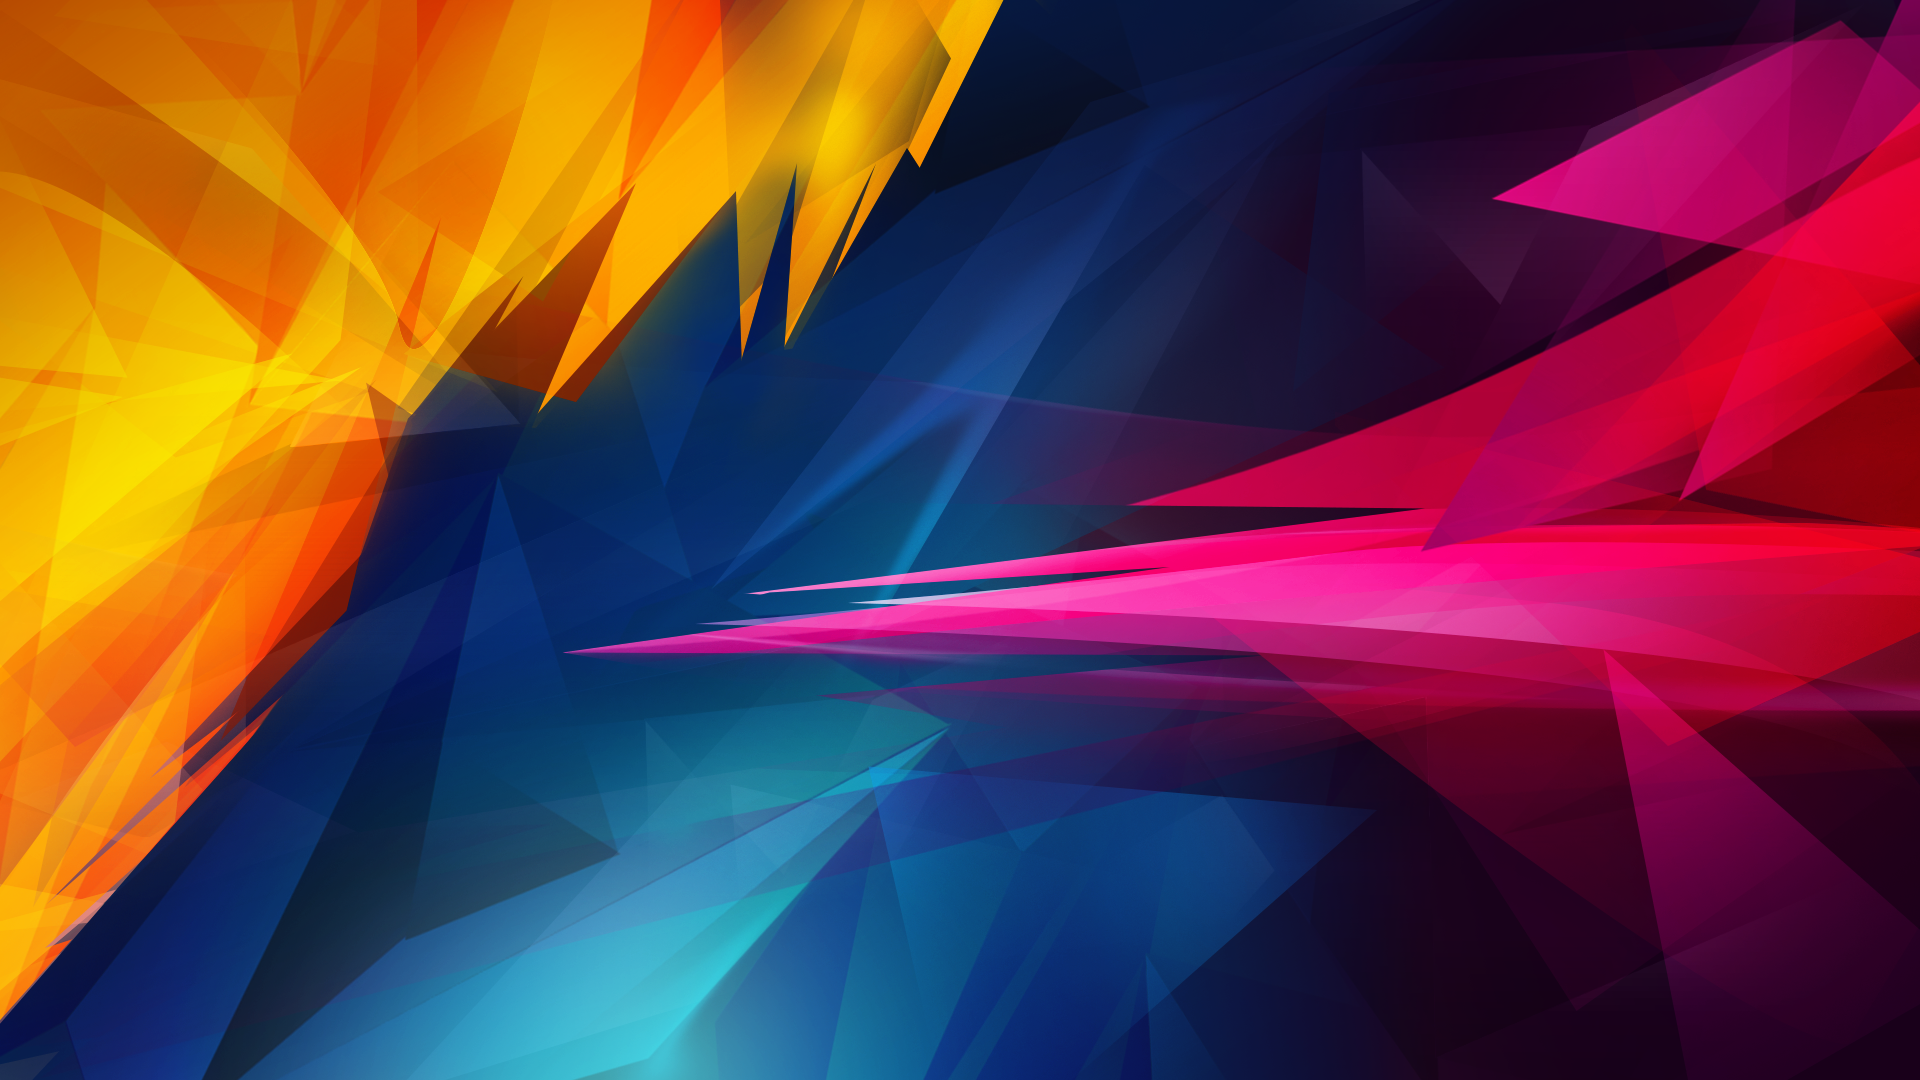 Abstract Wallpaper 1080p by SUPERsaeJANG 1920x1080